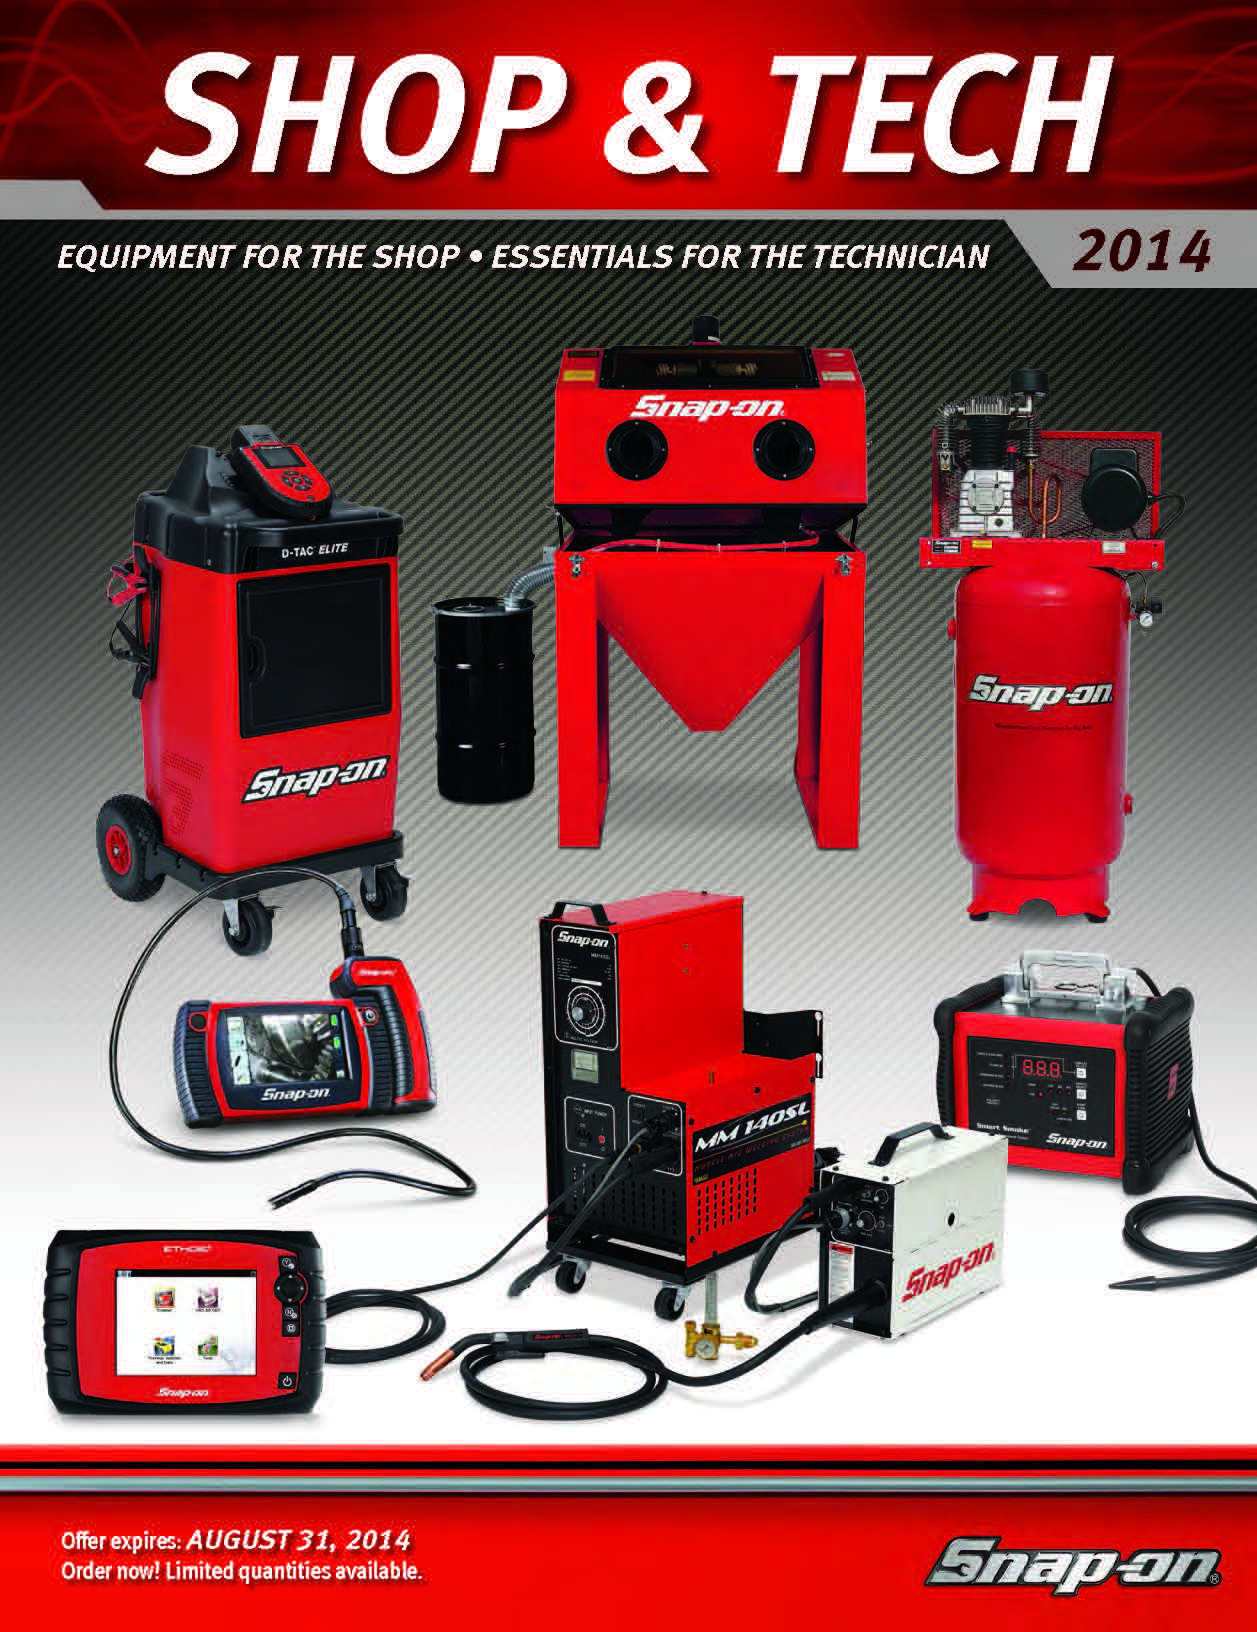 Changing Gear Updates From Kenworth Dana Bendix Fontaine Snap On Digital Fuel Pressure Tester Finally Says Its New Shop And Tech Catalog Features Useful Equipment Such As The 140a Muscle Mig Welder Mm140sl Designed To Provide Users With